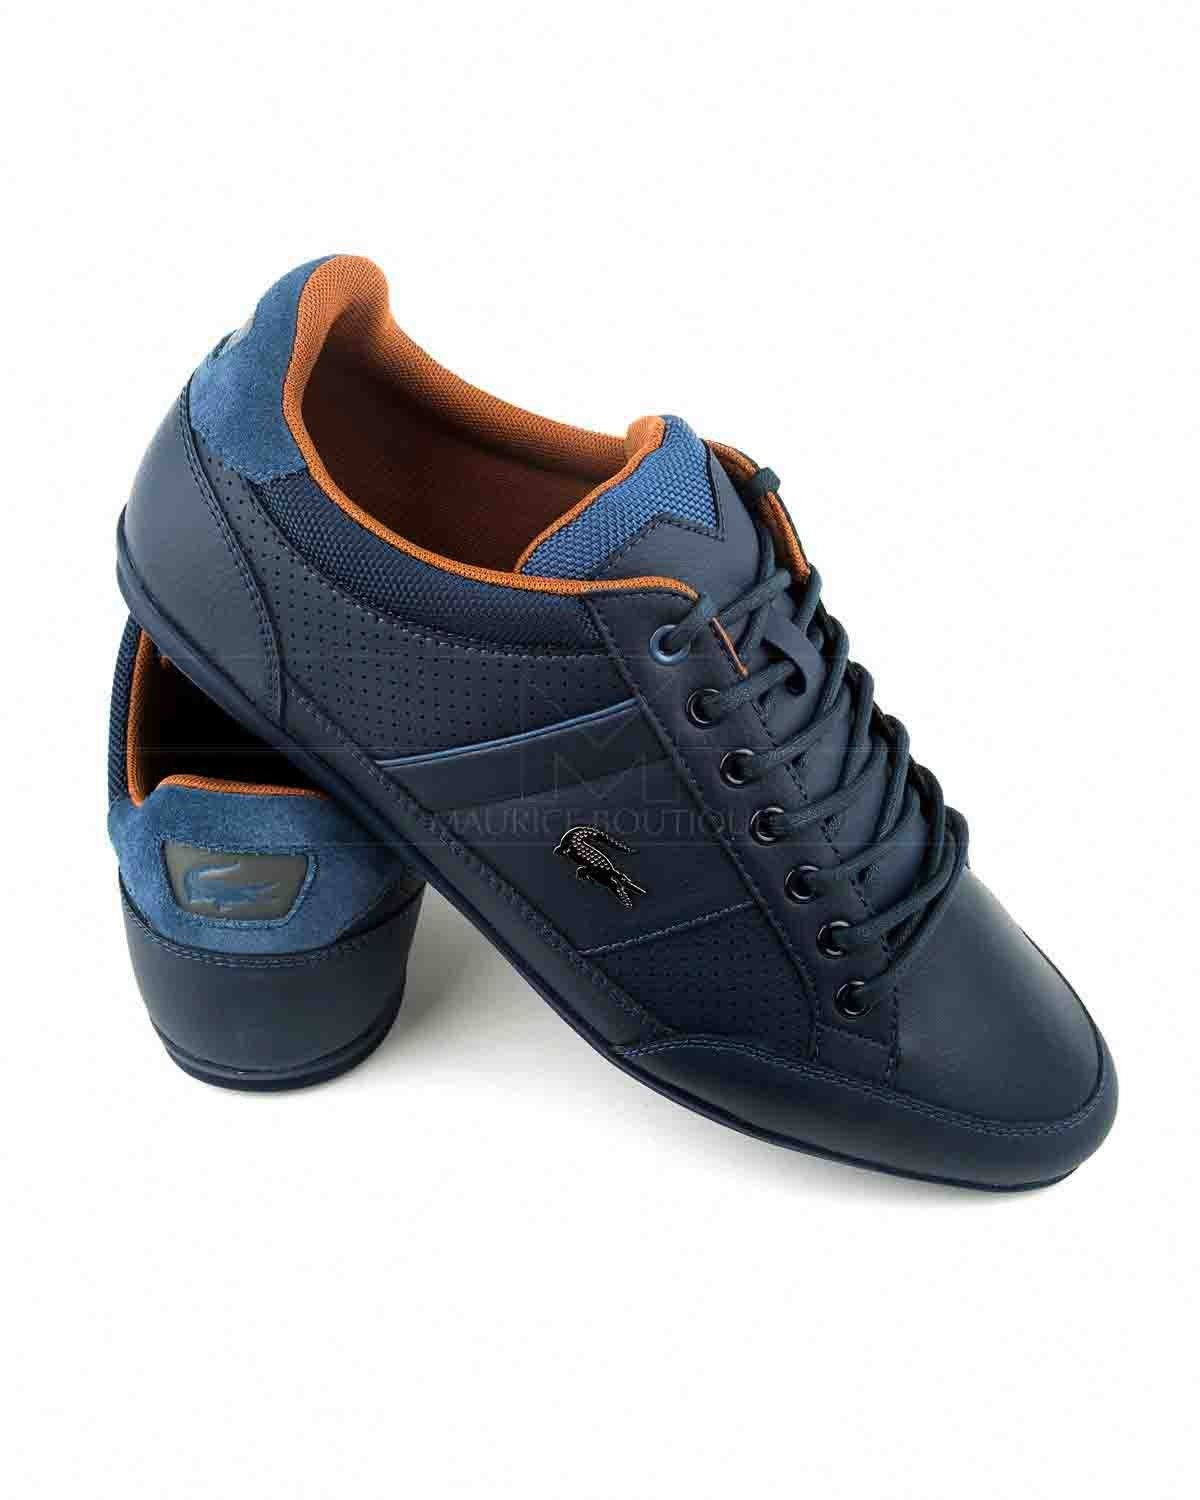 2844867b1 Lacoste Trainers Chaymon - Navy Blue in 2019